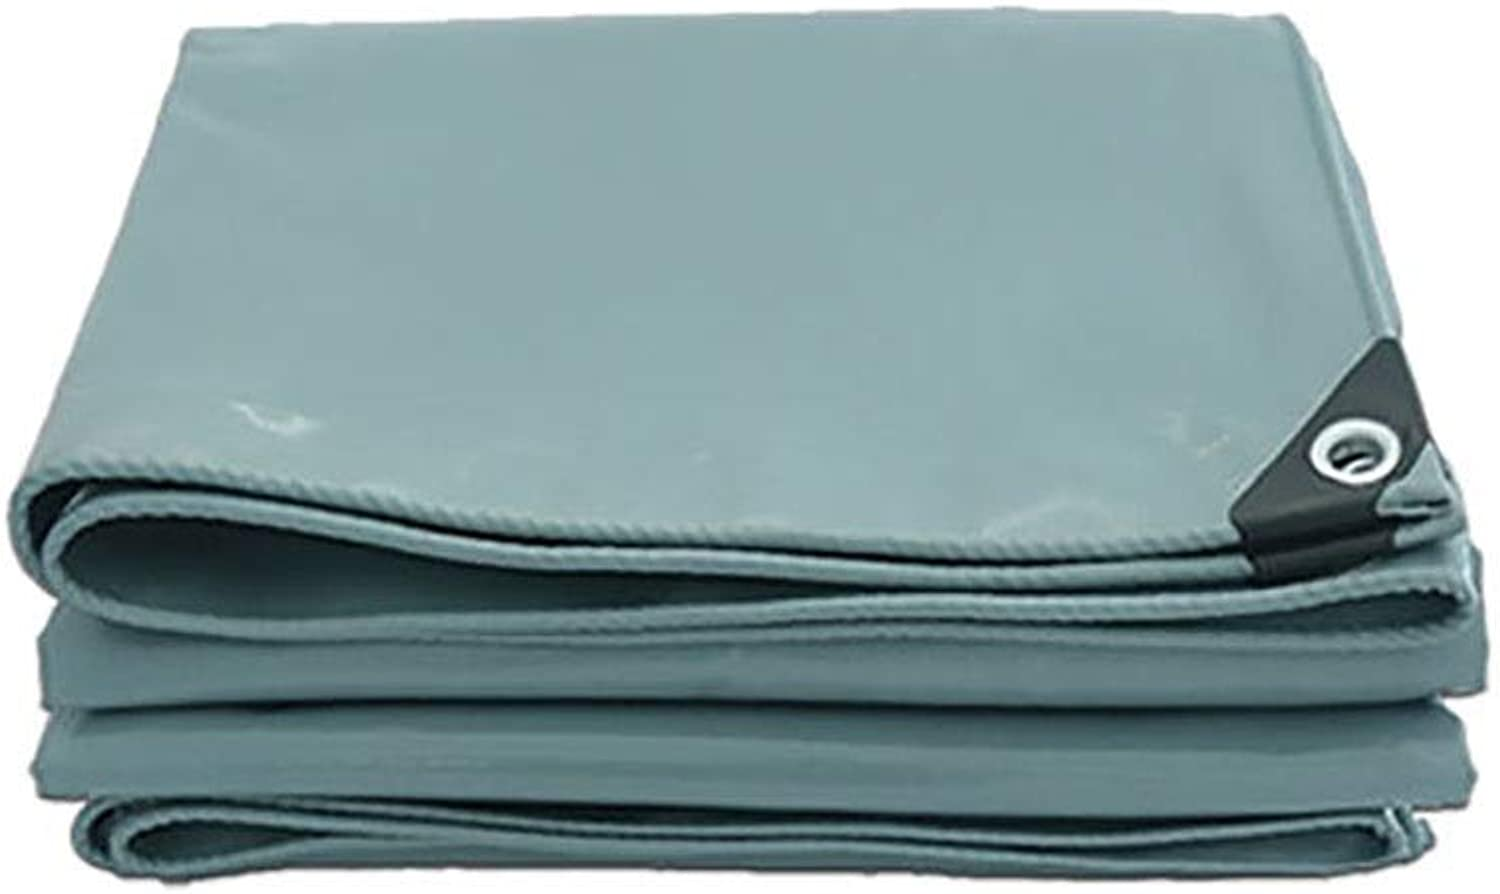 YXX Heavy Duty Tarpaulin Cover for Furniture, Outdoor Waterproof Poly Tarps Tent Splice Awning Sun Shade  500 G M2 (Size   4mx6m)